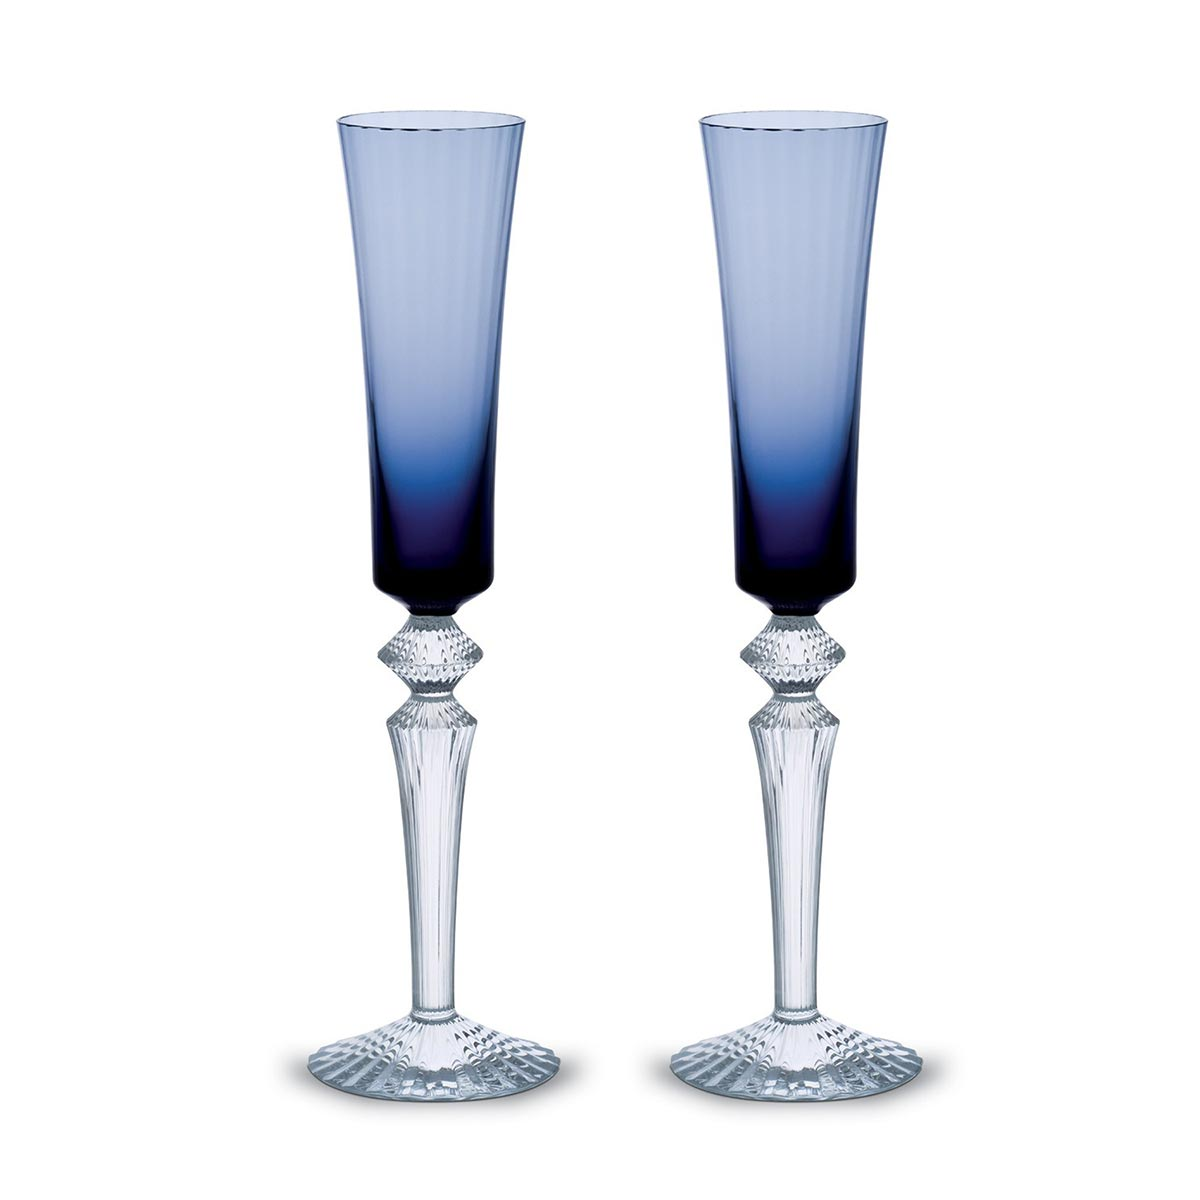 Set of 2 flutissimo midnight<br>17cl, H: 29cm<br>Mille Nuits